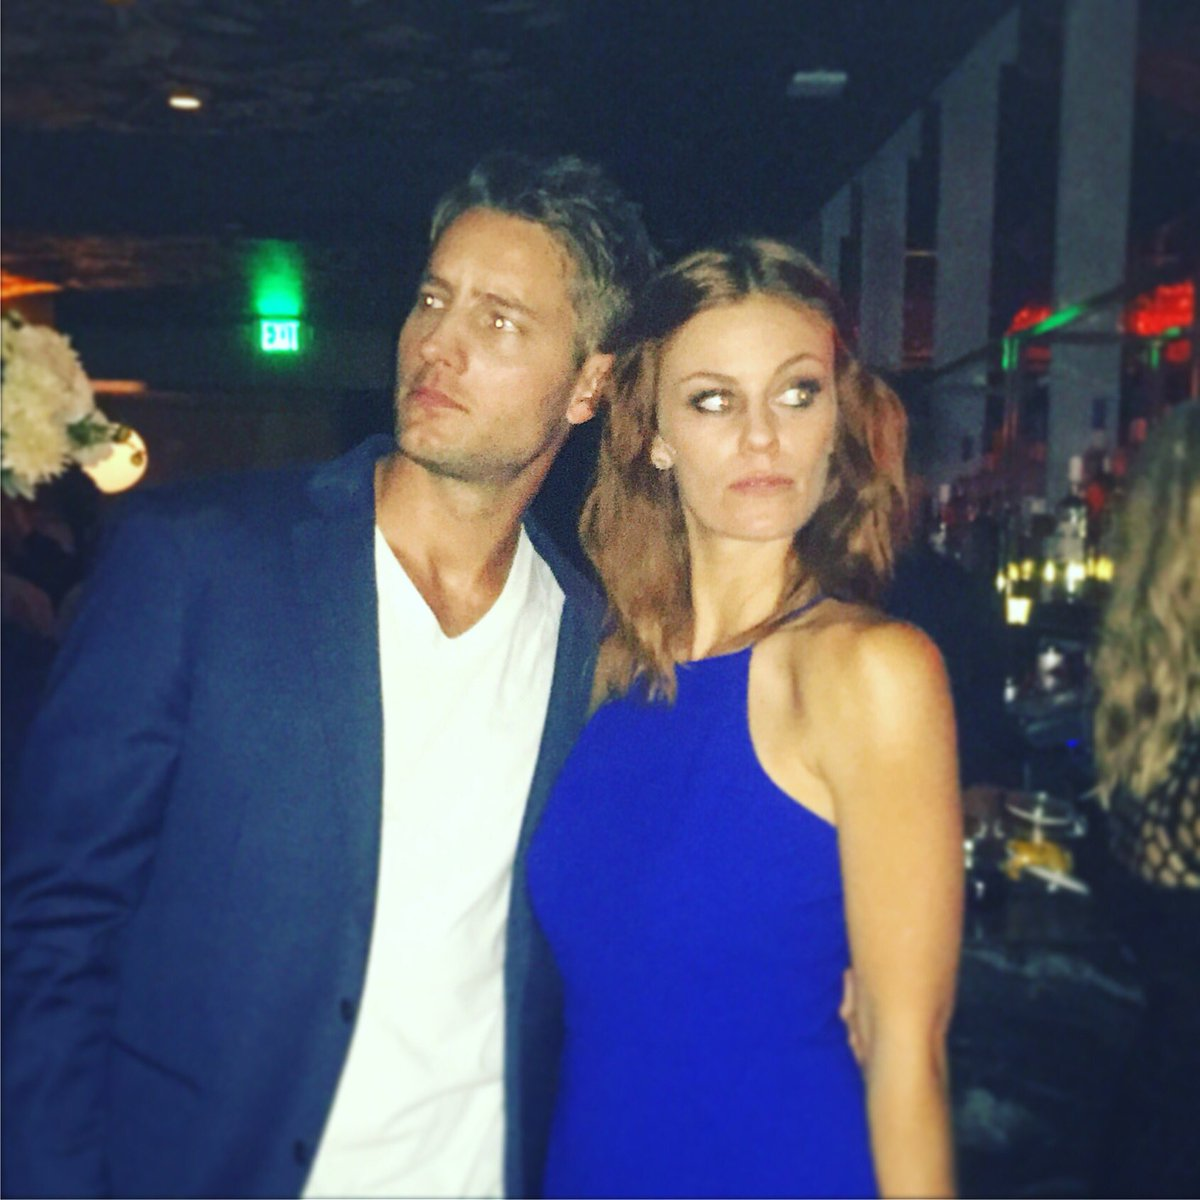 Trouble. Just like old times. #Smallville #tessmercer #oliverqueen @justinhartley https://t.co/Drm60IYPGE